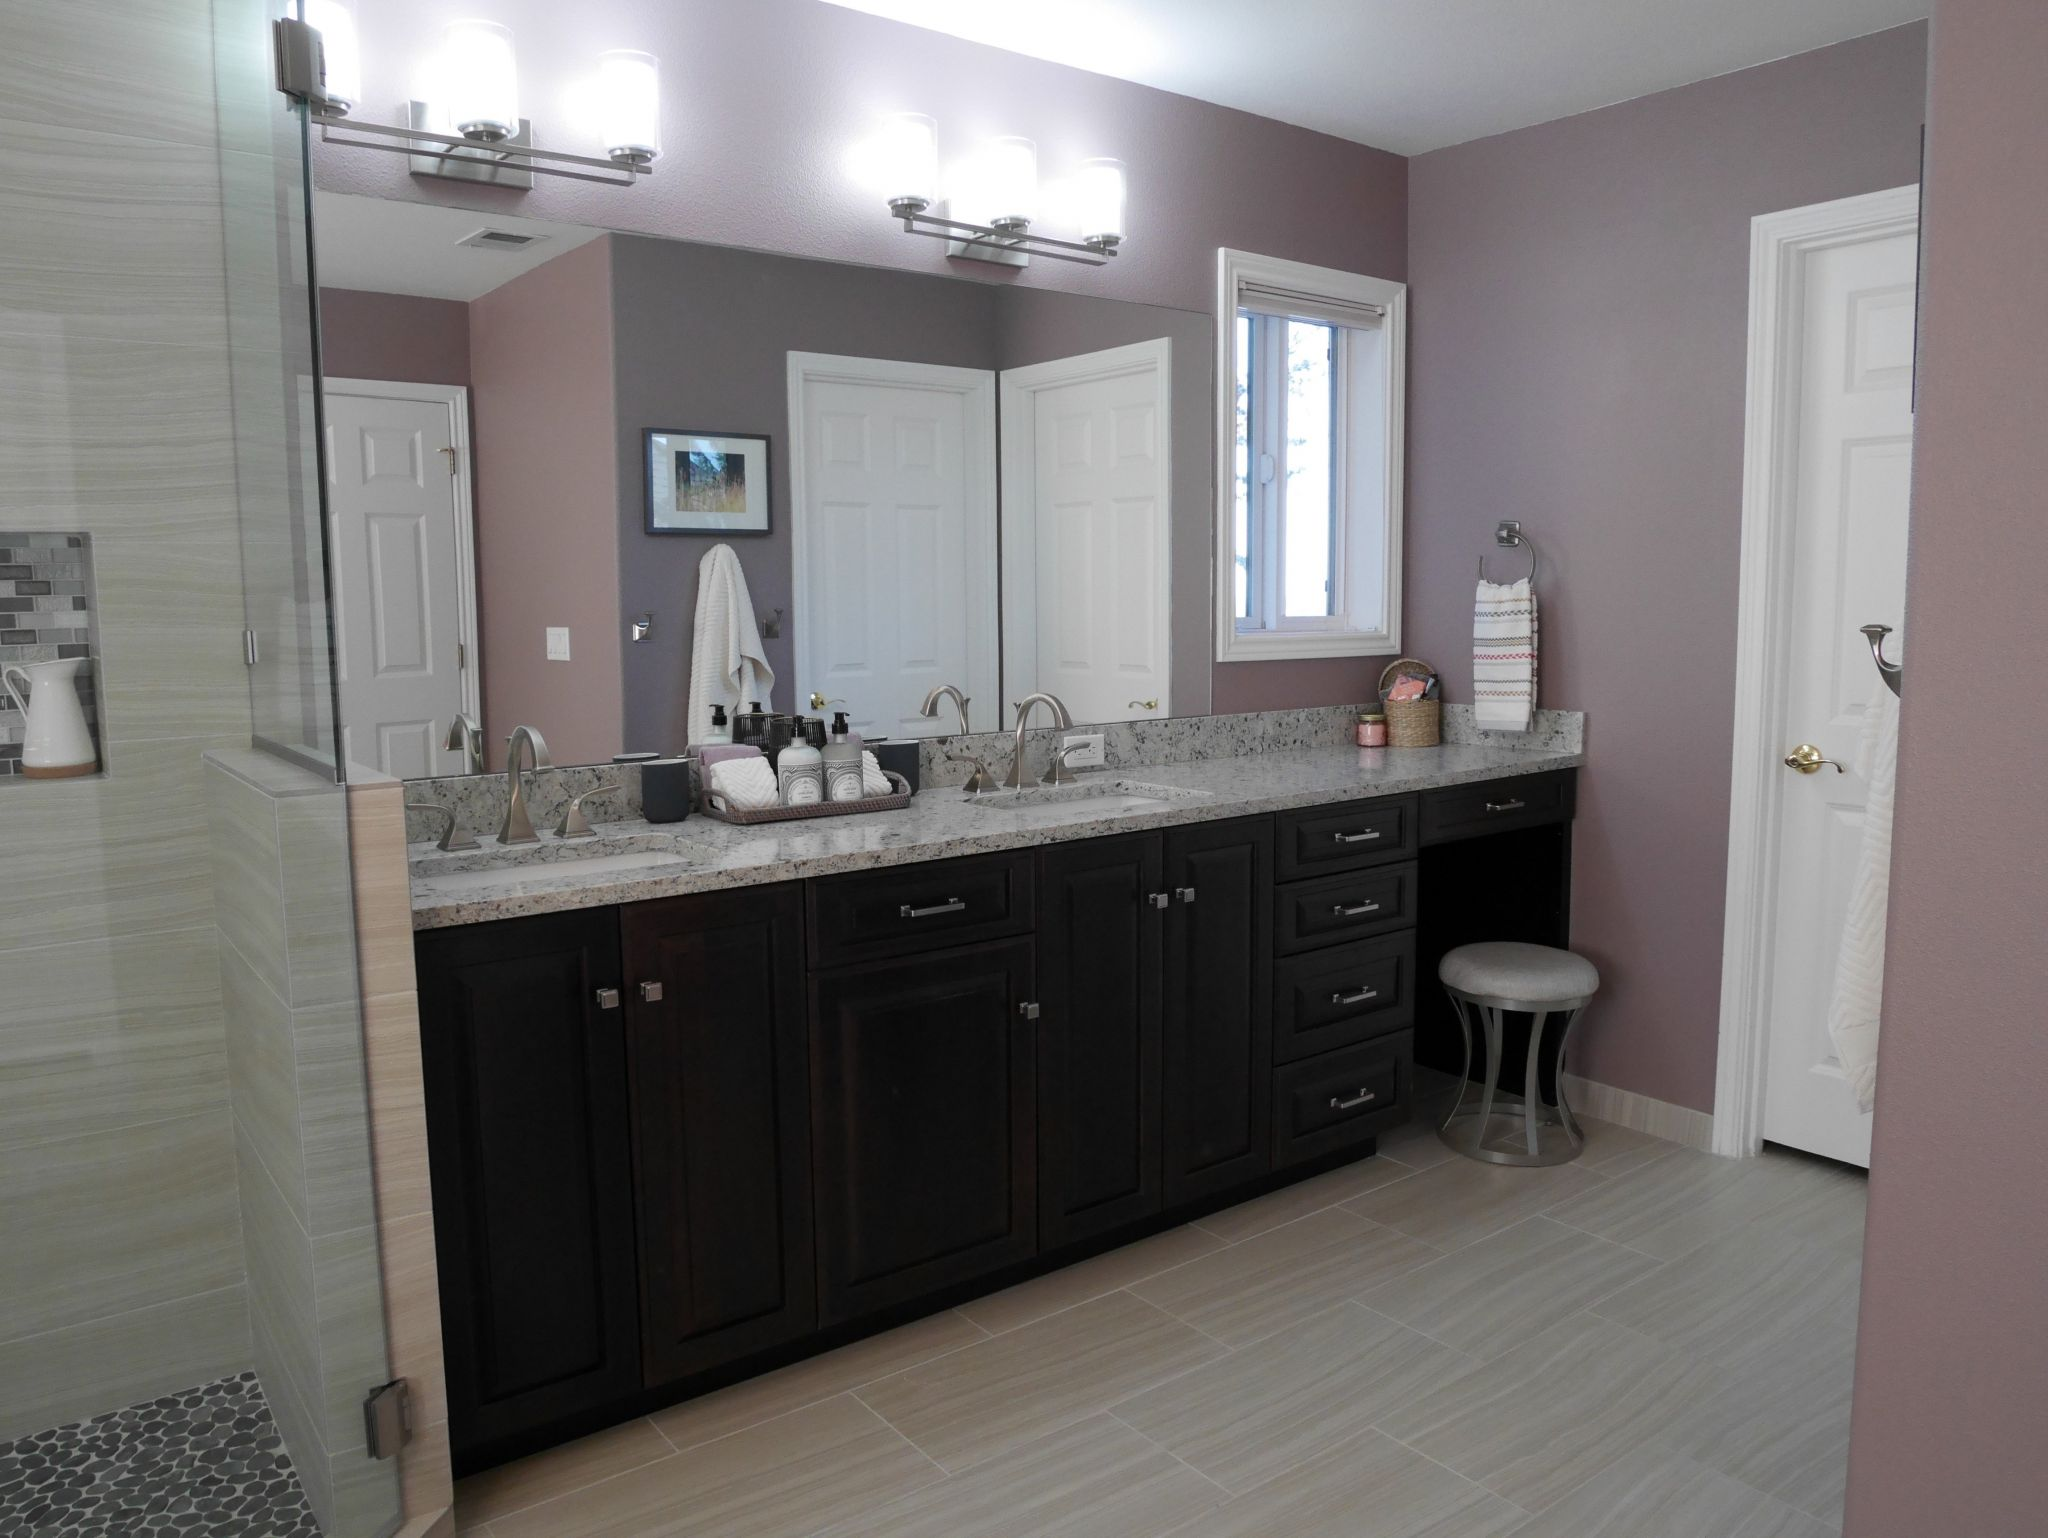 Bathroom with a double vanity and double sinks